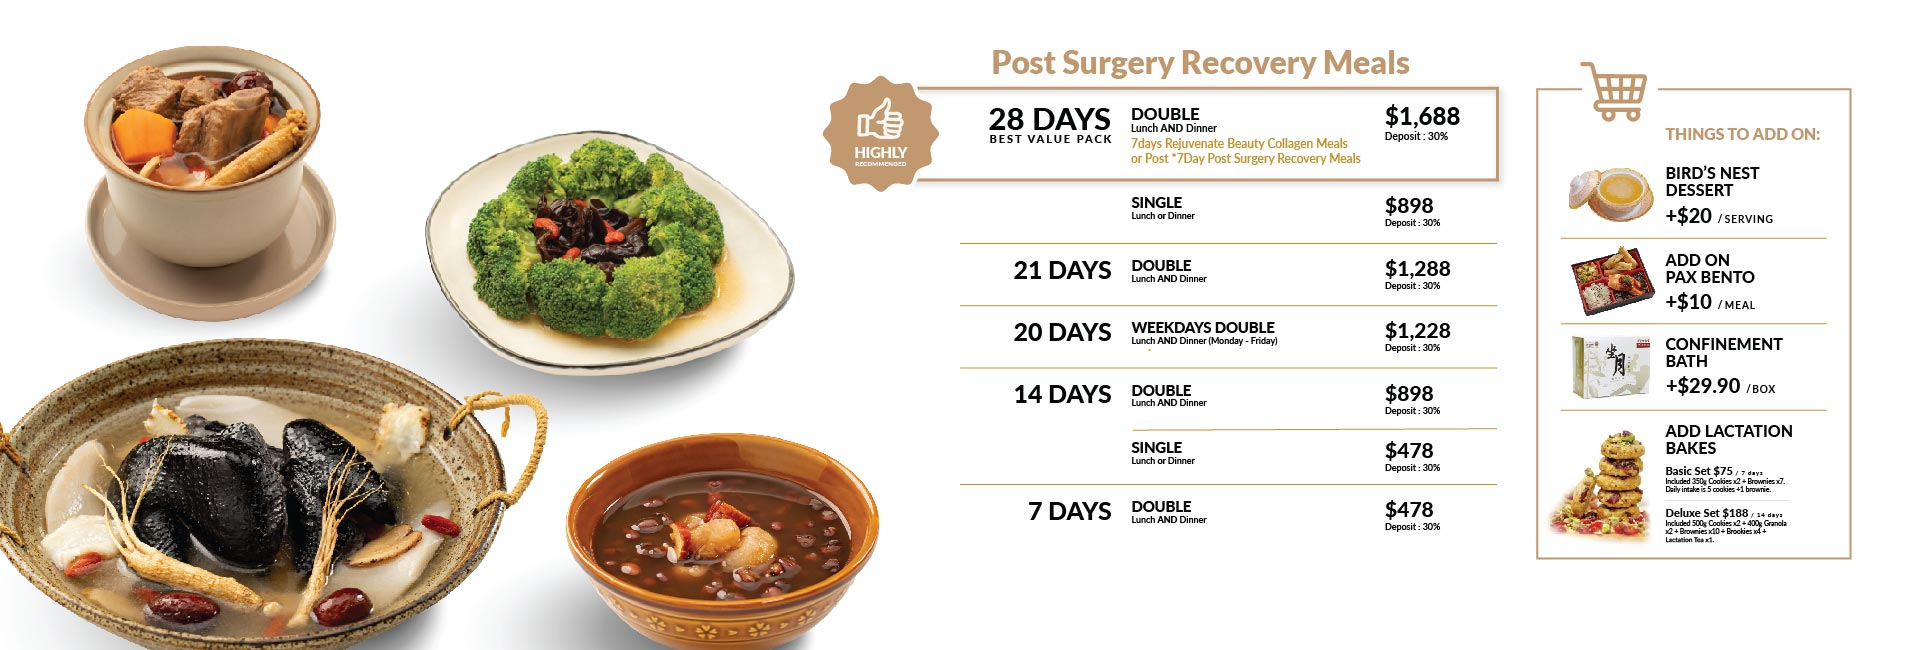 W_Post Surgery Recovery Meals